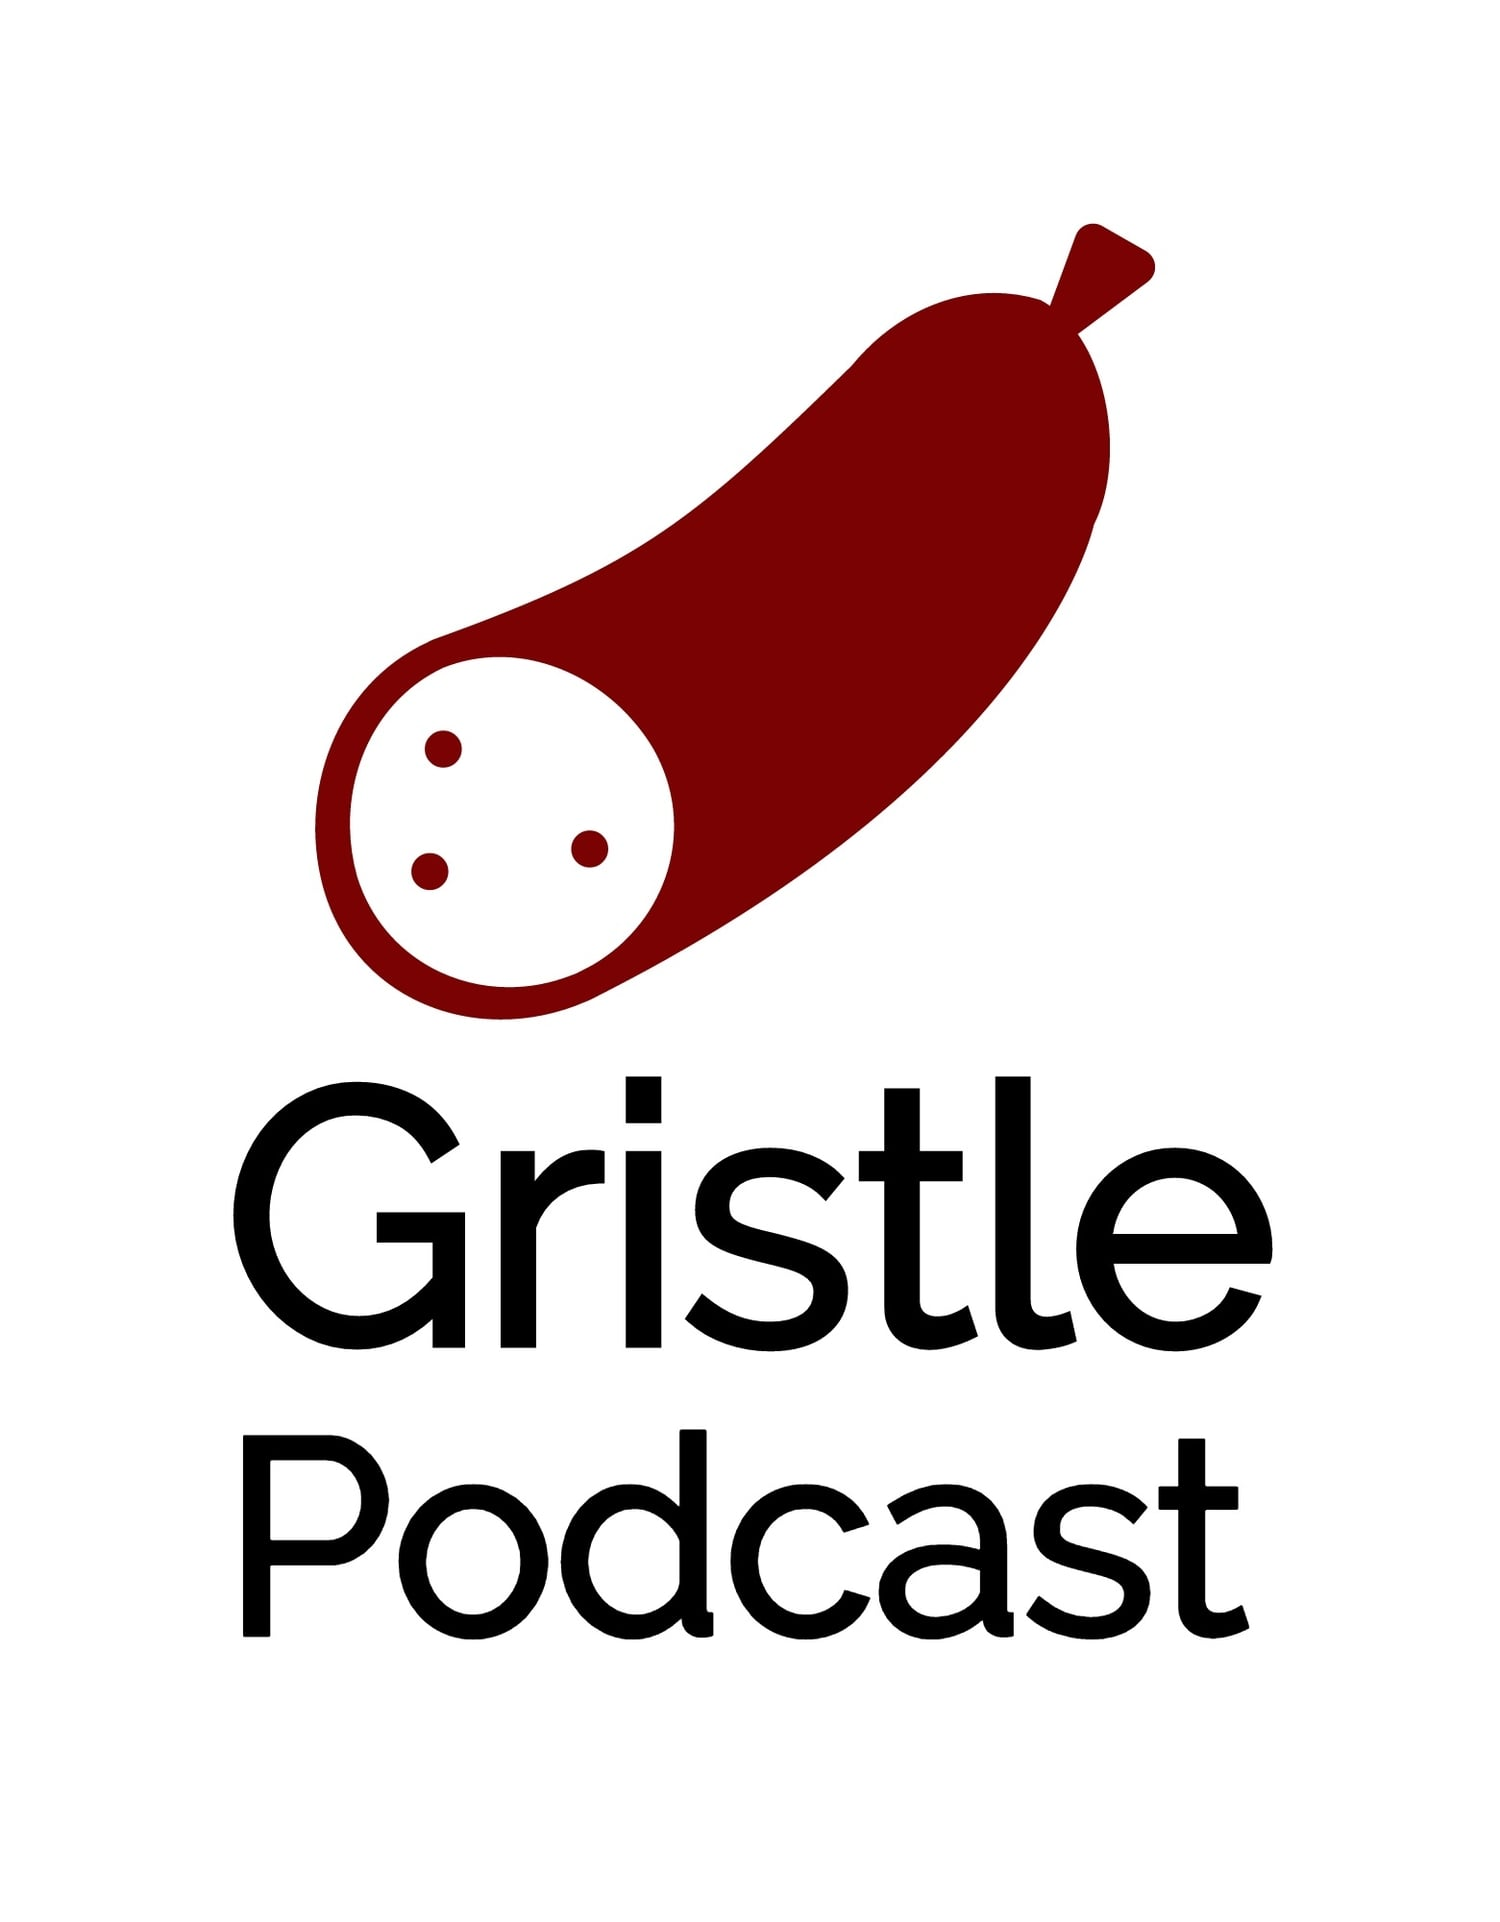 Gristle Podcast - A podcast about the news, issues, and culture of food...and other stuff